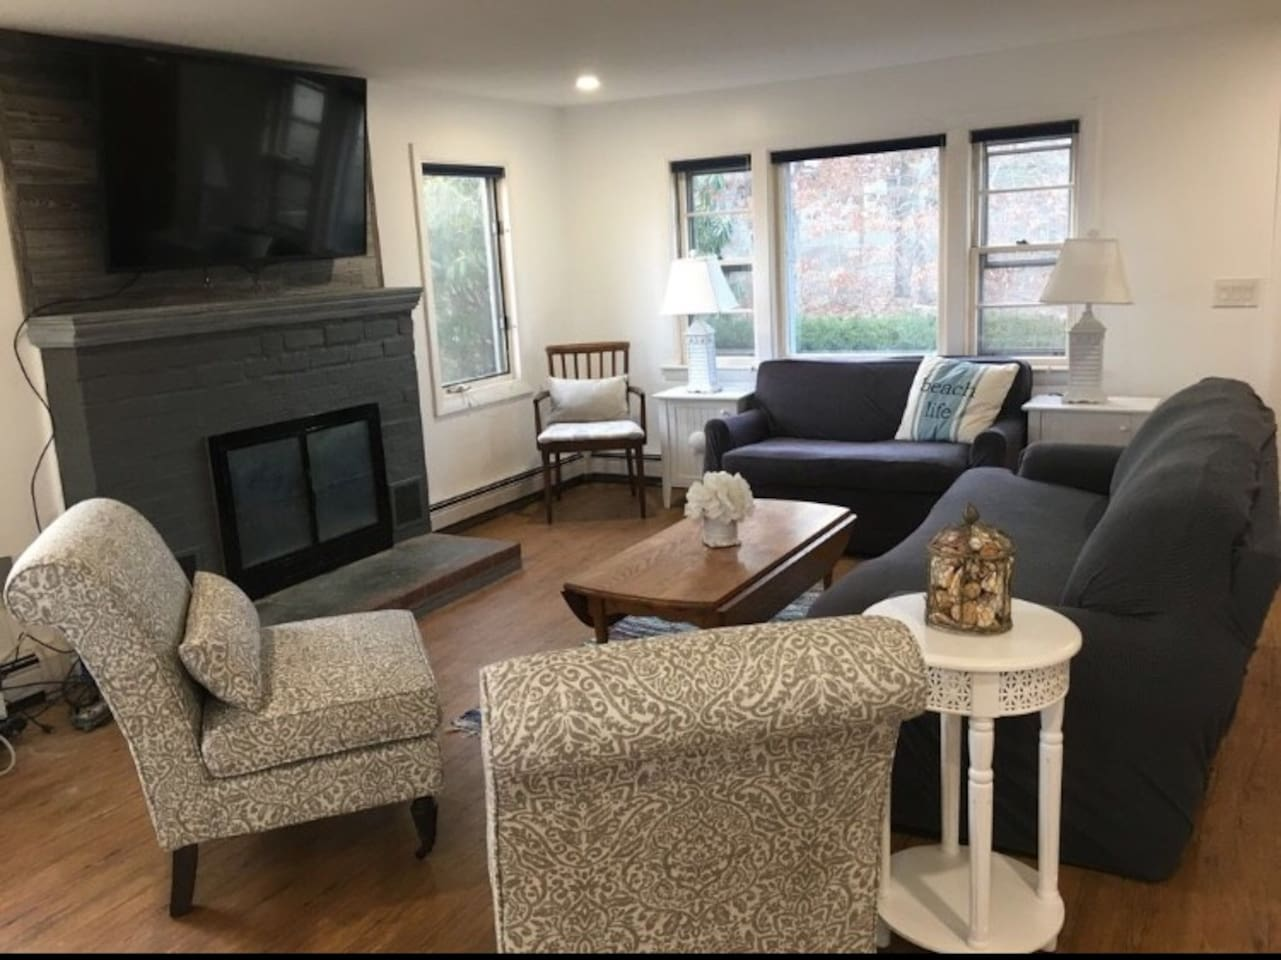 Over the Winter, we completely revovated this waterfront cottage. Here is the bright open family room with water views. Also, a Brand new Master suite including King bed, brand new full master bathroom. New easy care Allure wood flooring throughout.